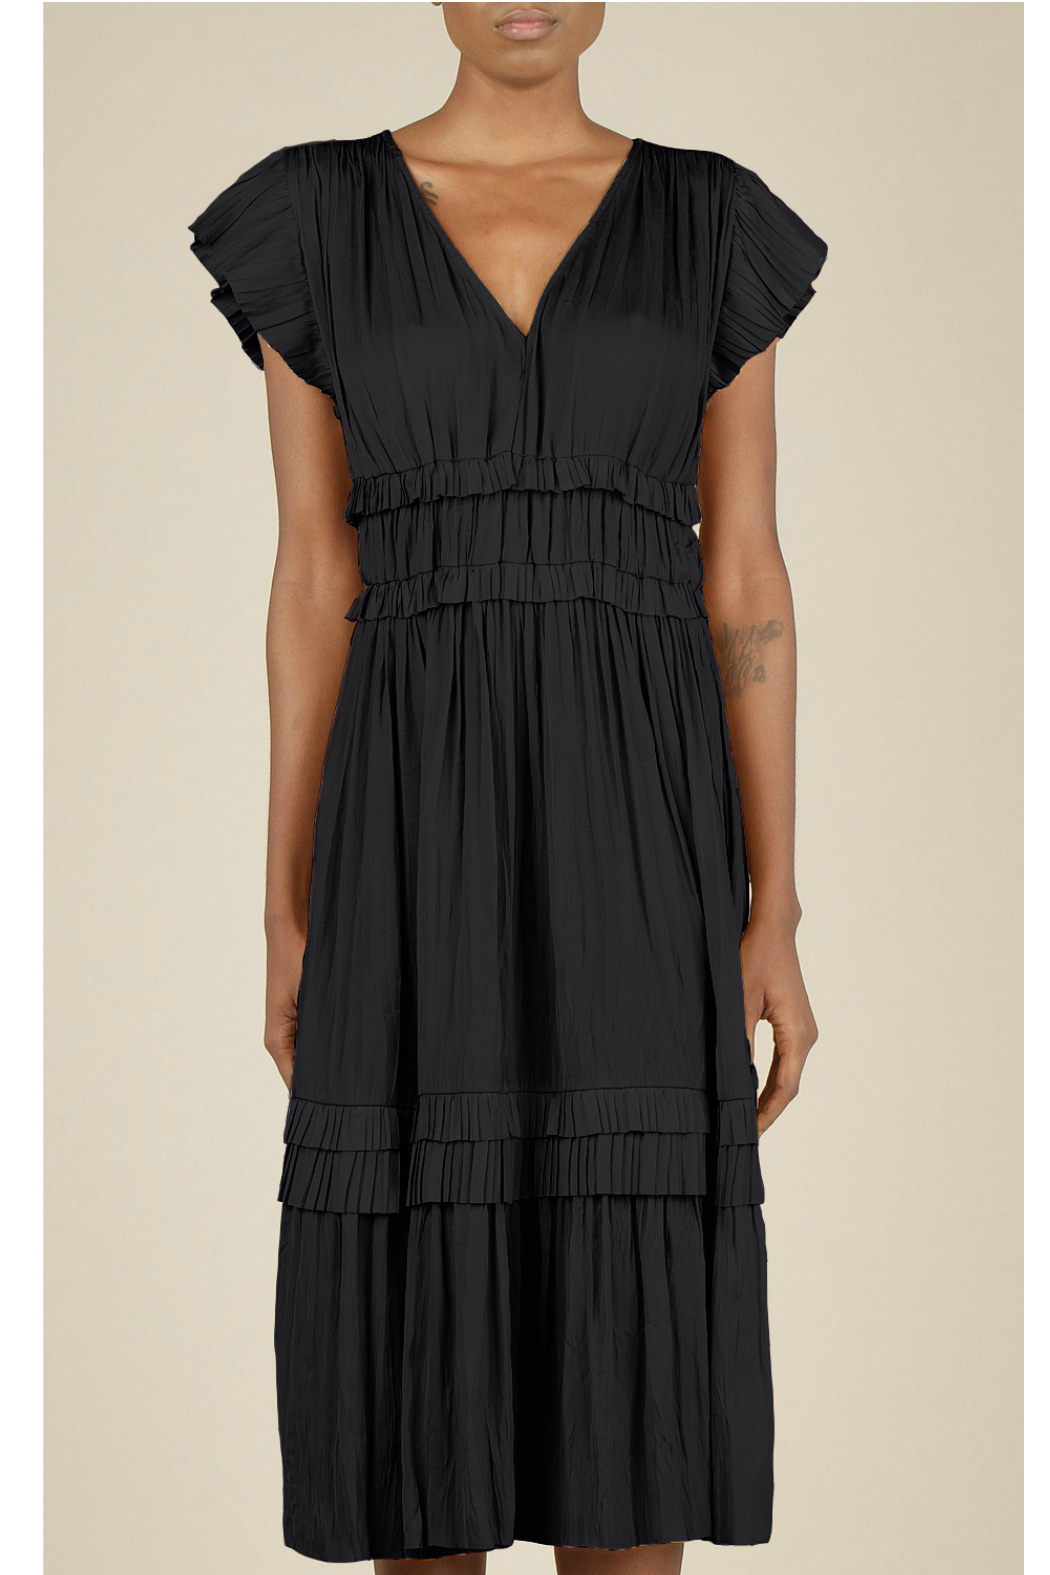 Current Air Pleated ruffle dress - Main Image